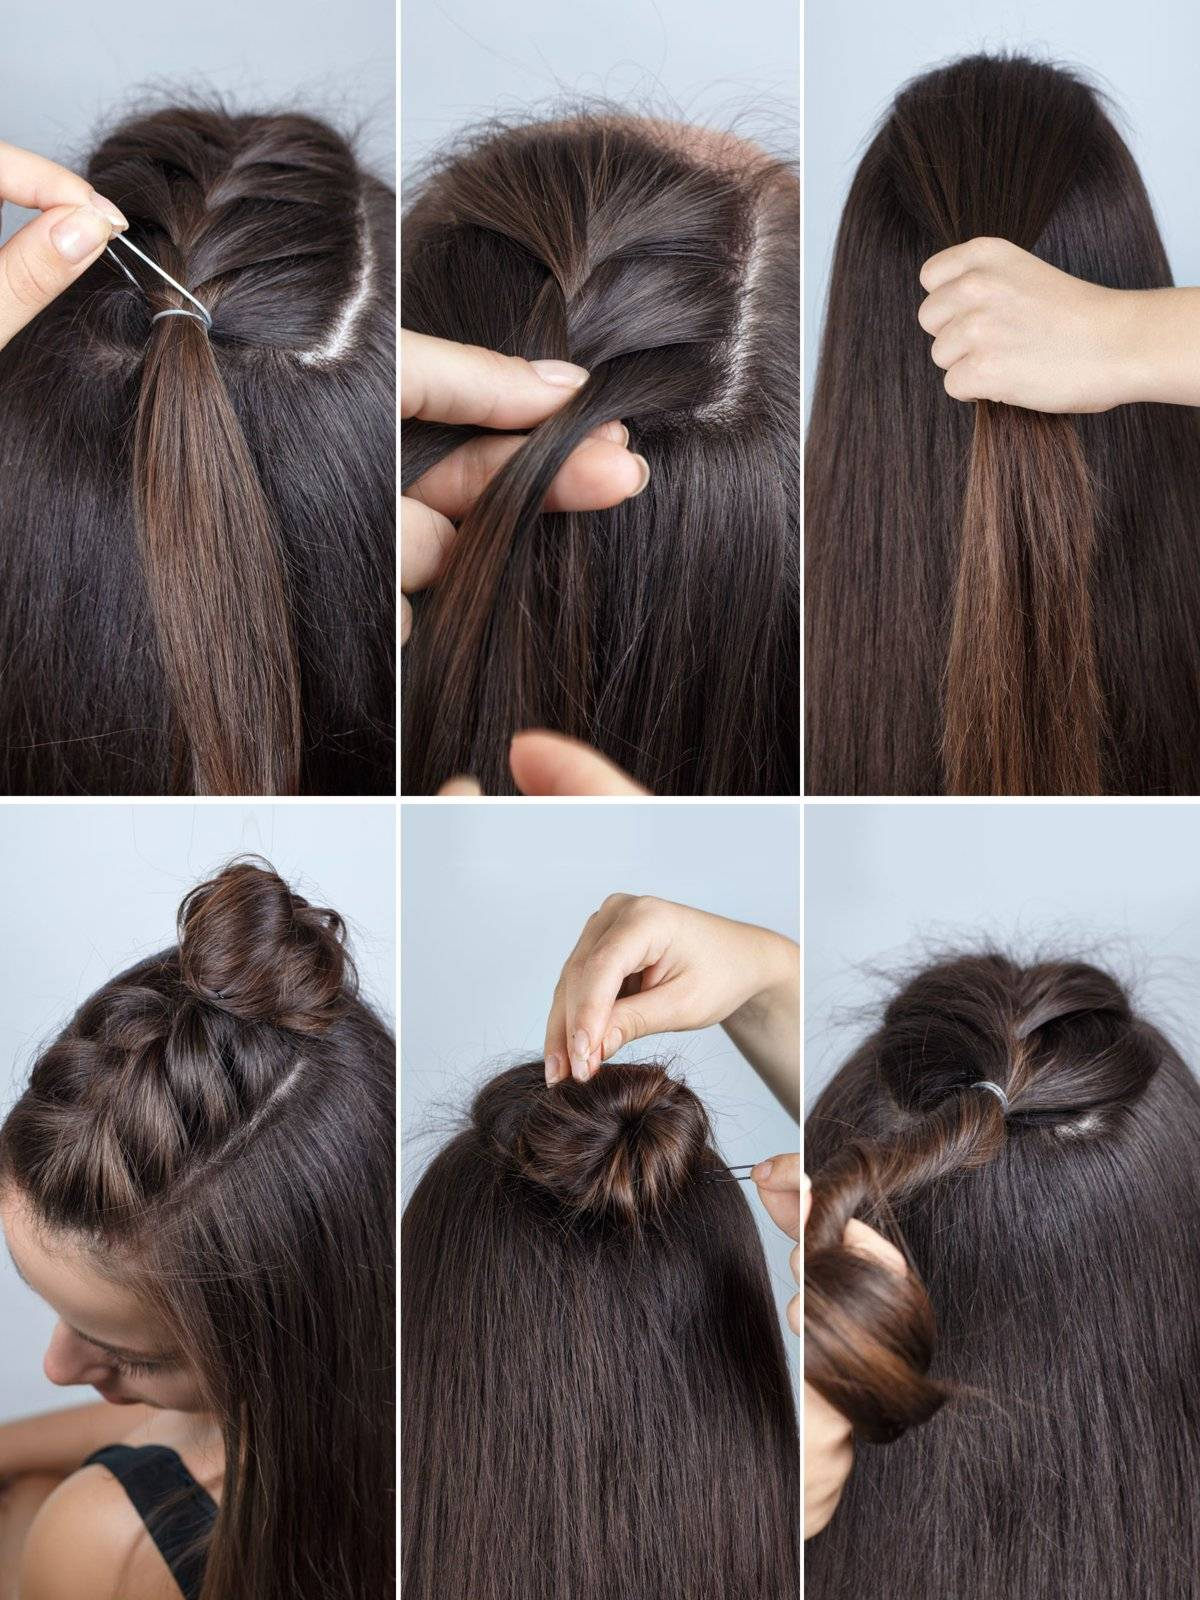 Hairstyles diy and tutorial for all hair lengths 044 | fashion